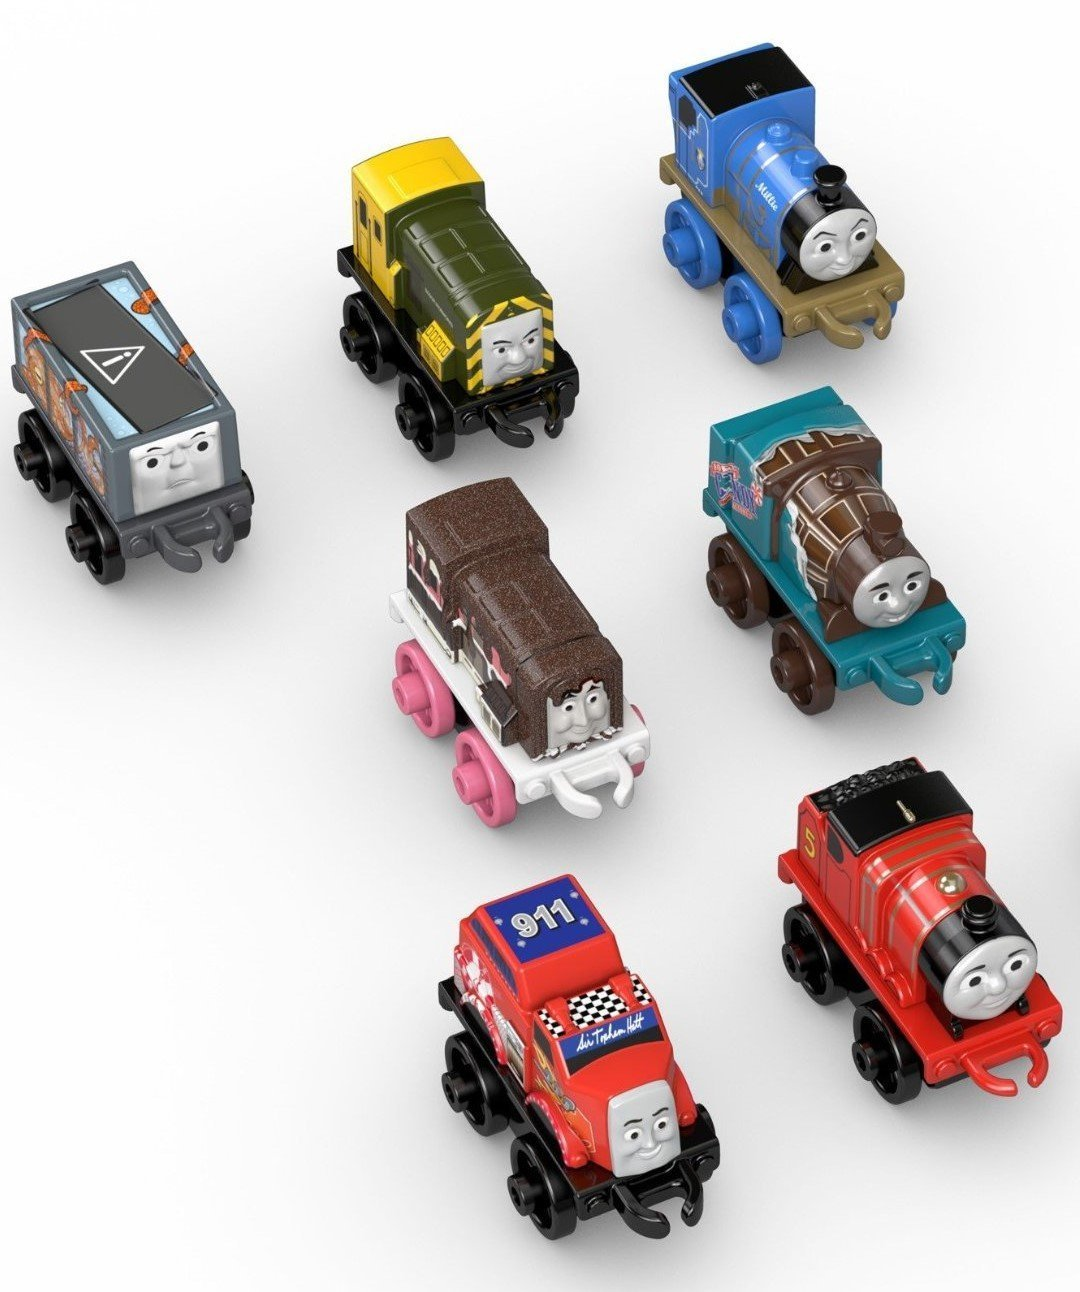 Fisher Price Thomas The Train Engine 7 Pack (Minis) Toy - Racing Flynn, Classic James, Classic Millie, Classic Iron Bert, Sweets Sidney, Sweets Ferdinand & Creature Troublesome Truck DTV15